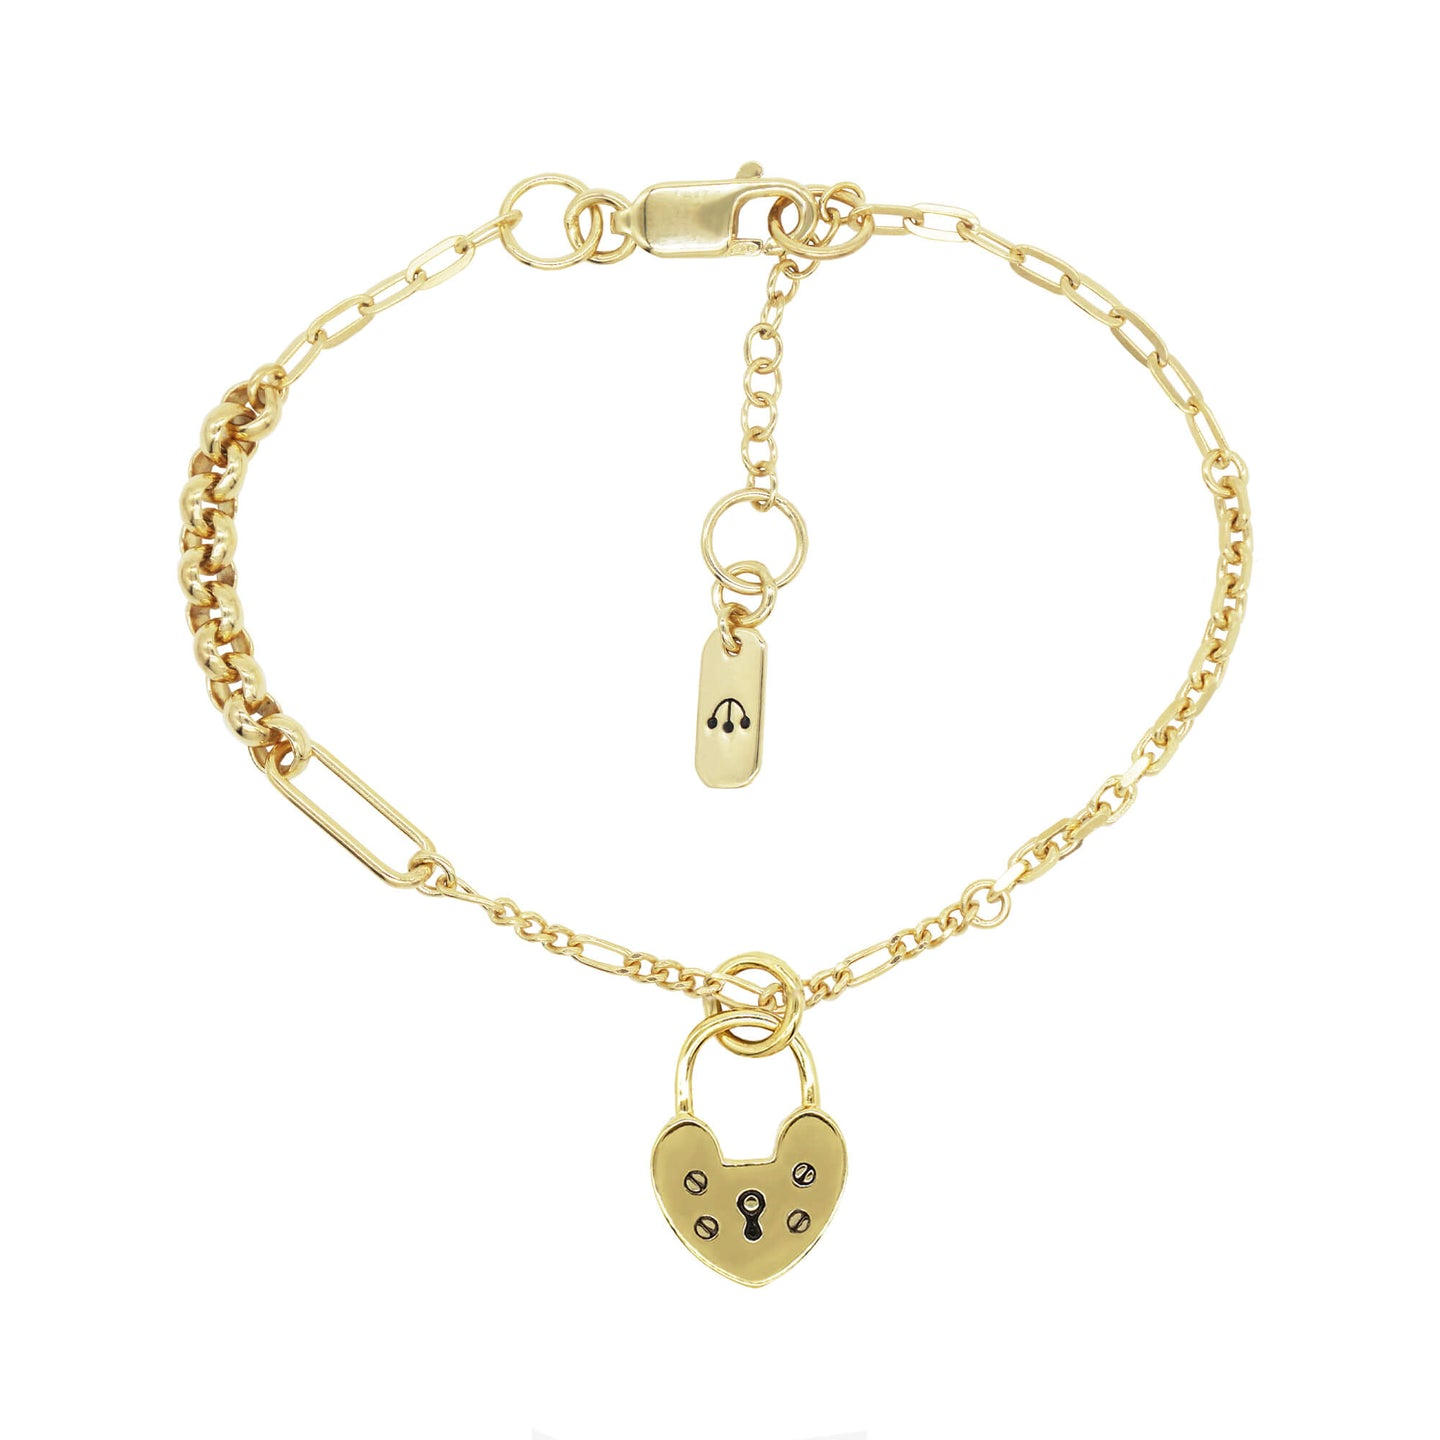 close up product shop of pawnshop gold plated sterling silver heart charm bracelet. Mixed chain bracelet, small non working heart locket with engraved screw and keyhole. Pawnshop 3 logo symbol tag on the end of the extension chain. Product shot on a white background.